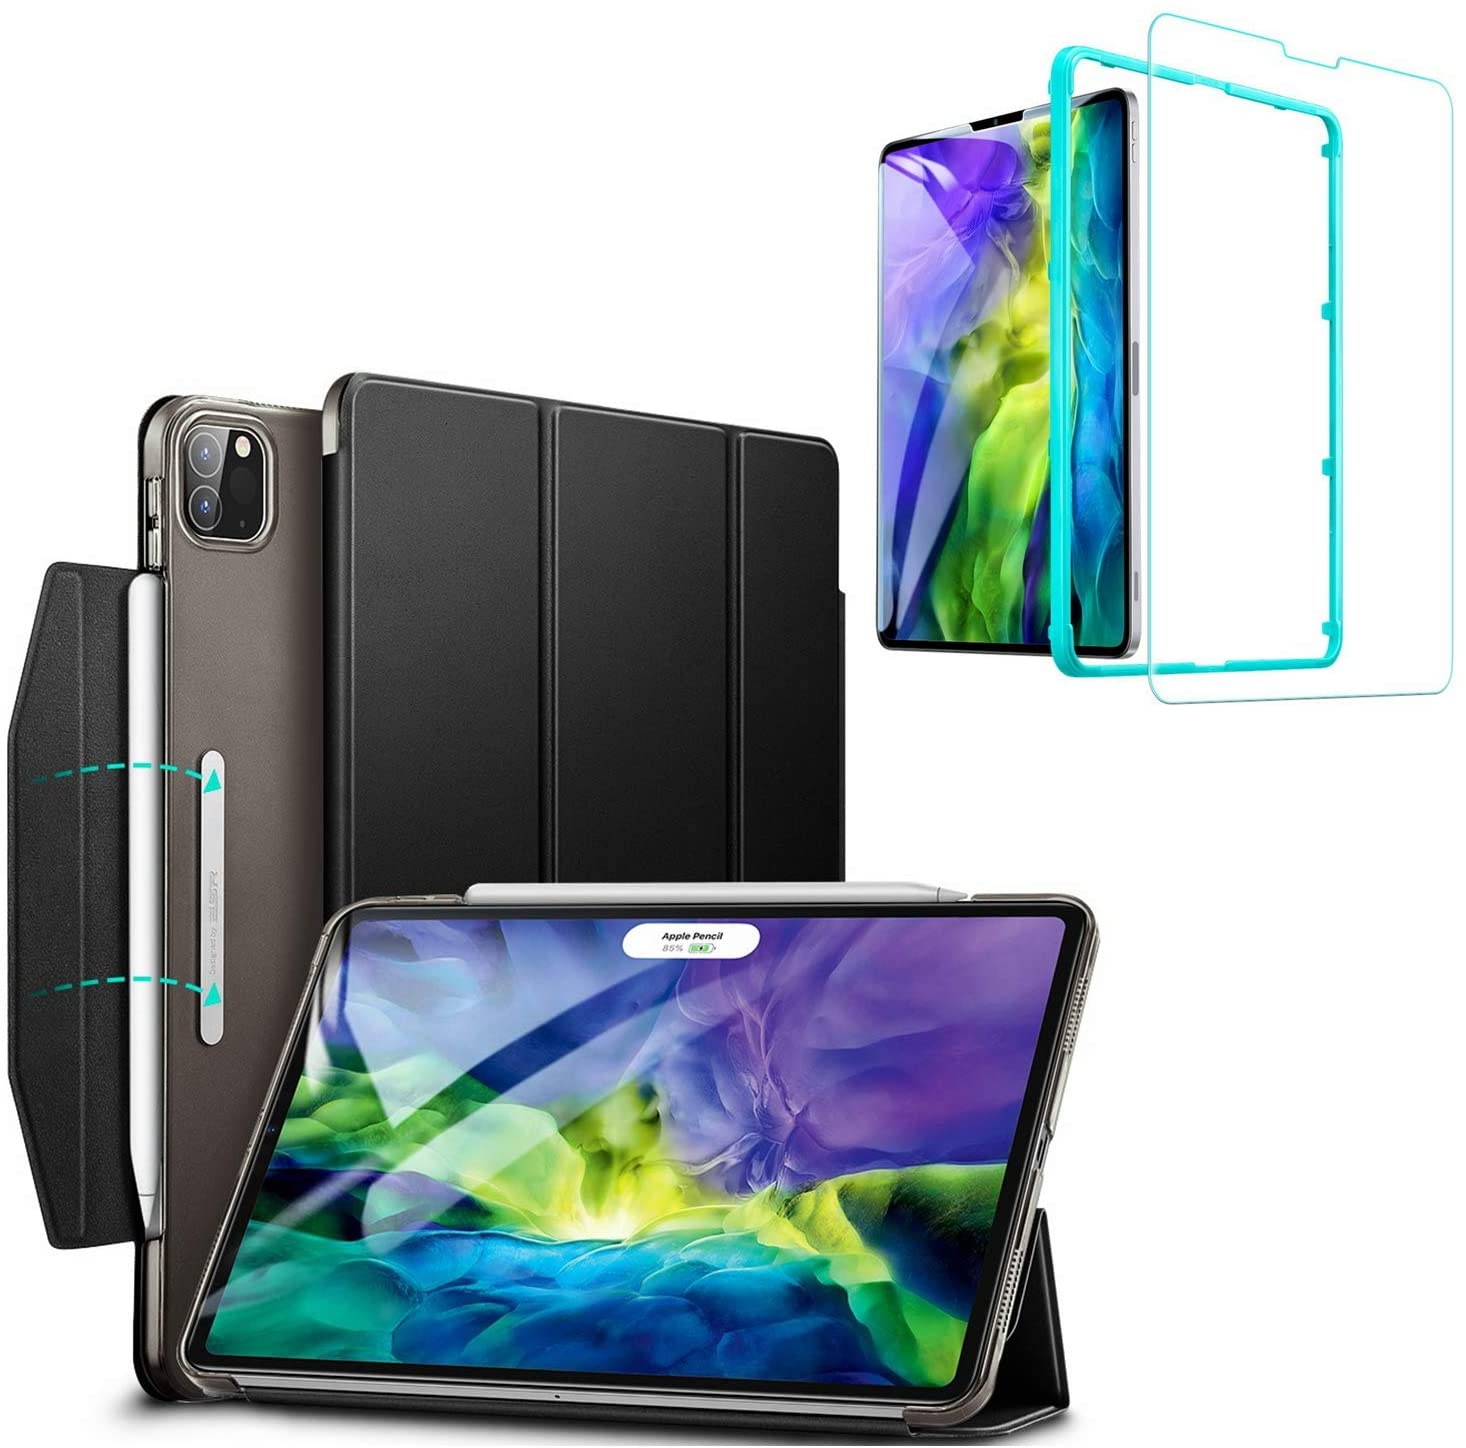 ESR Yippee Trifold Smart Case for iPad Pro 11 2020 with Screen Protector, [Auto Sleep/Wake] [Supports Pencil Wireless Charging], Lightweight Stand Case Cover with Clasp - Black